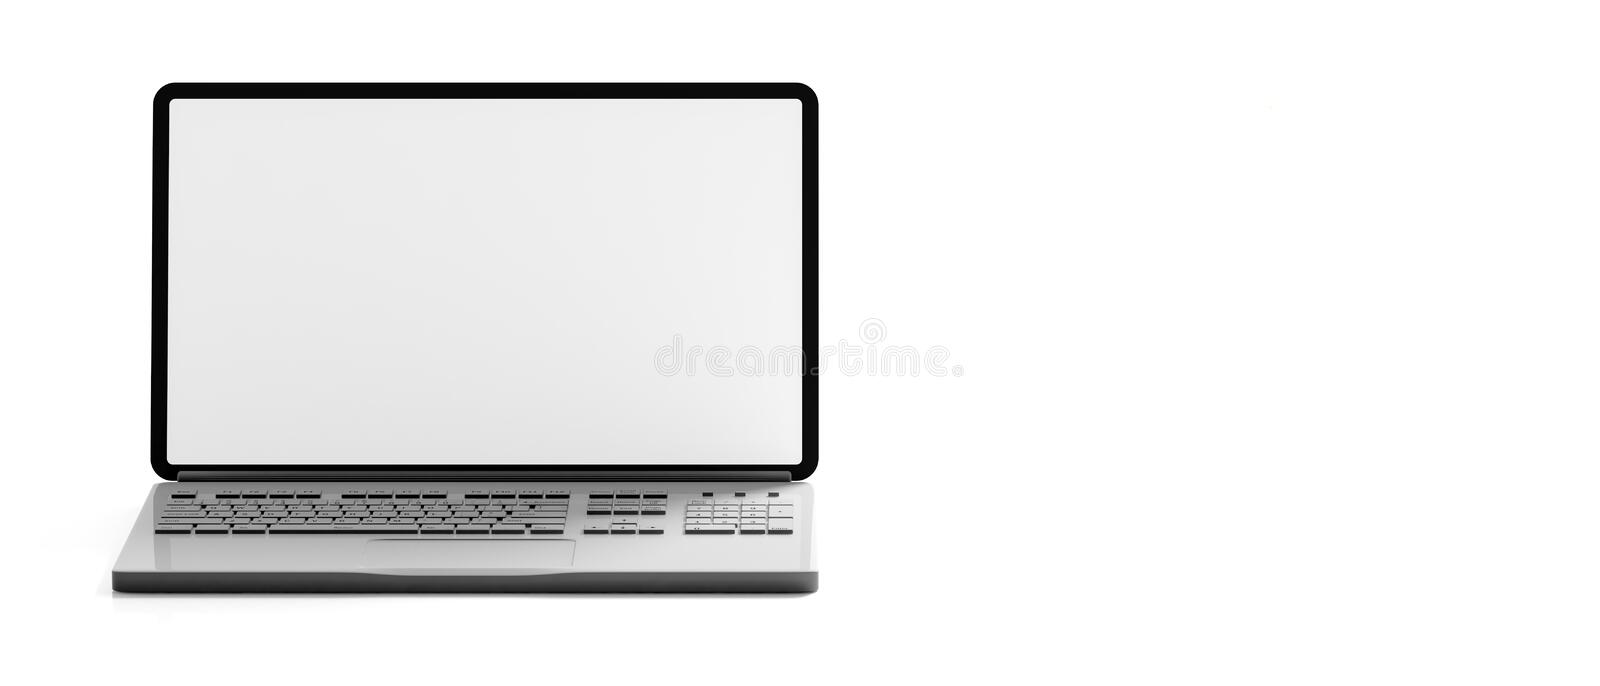 Computer laptop with blank screen isolated on white background, banner, copy space, front view. 3d illustration stock illustration